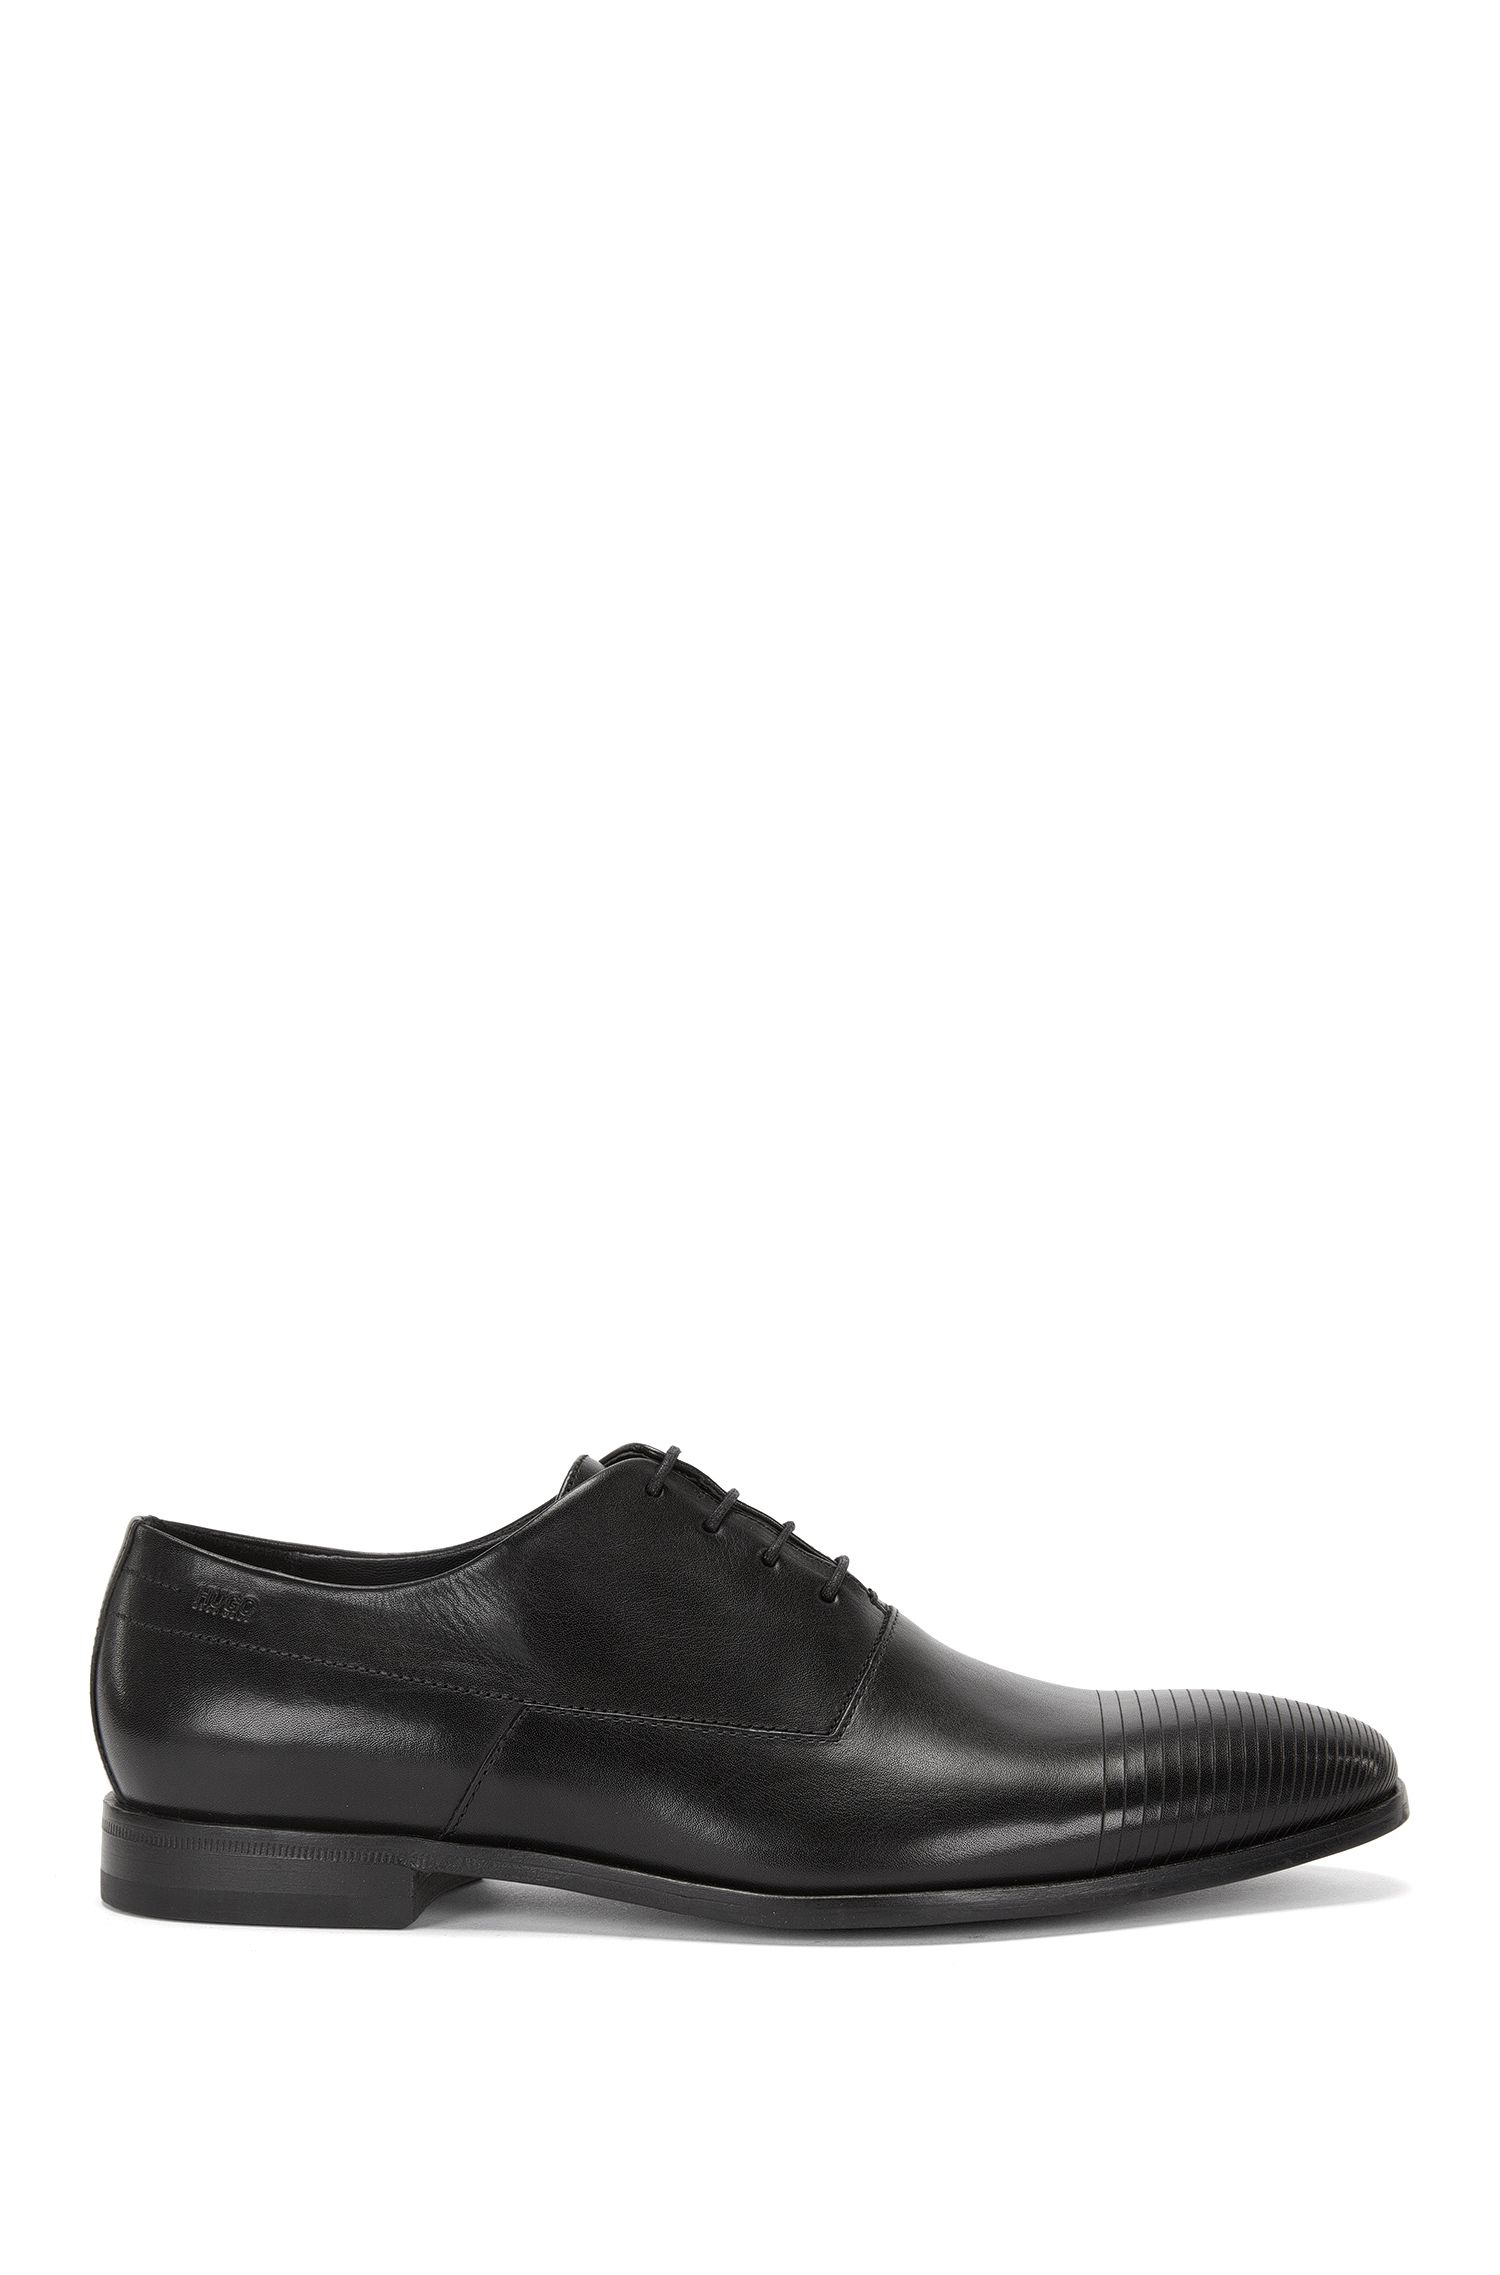 Leather lace-up shoes with lasered detail: 'Square_Oxfr_ltls'